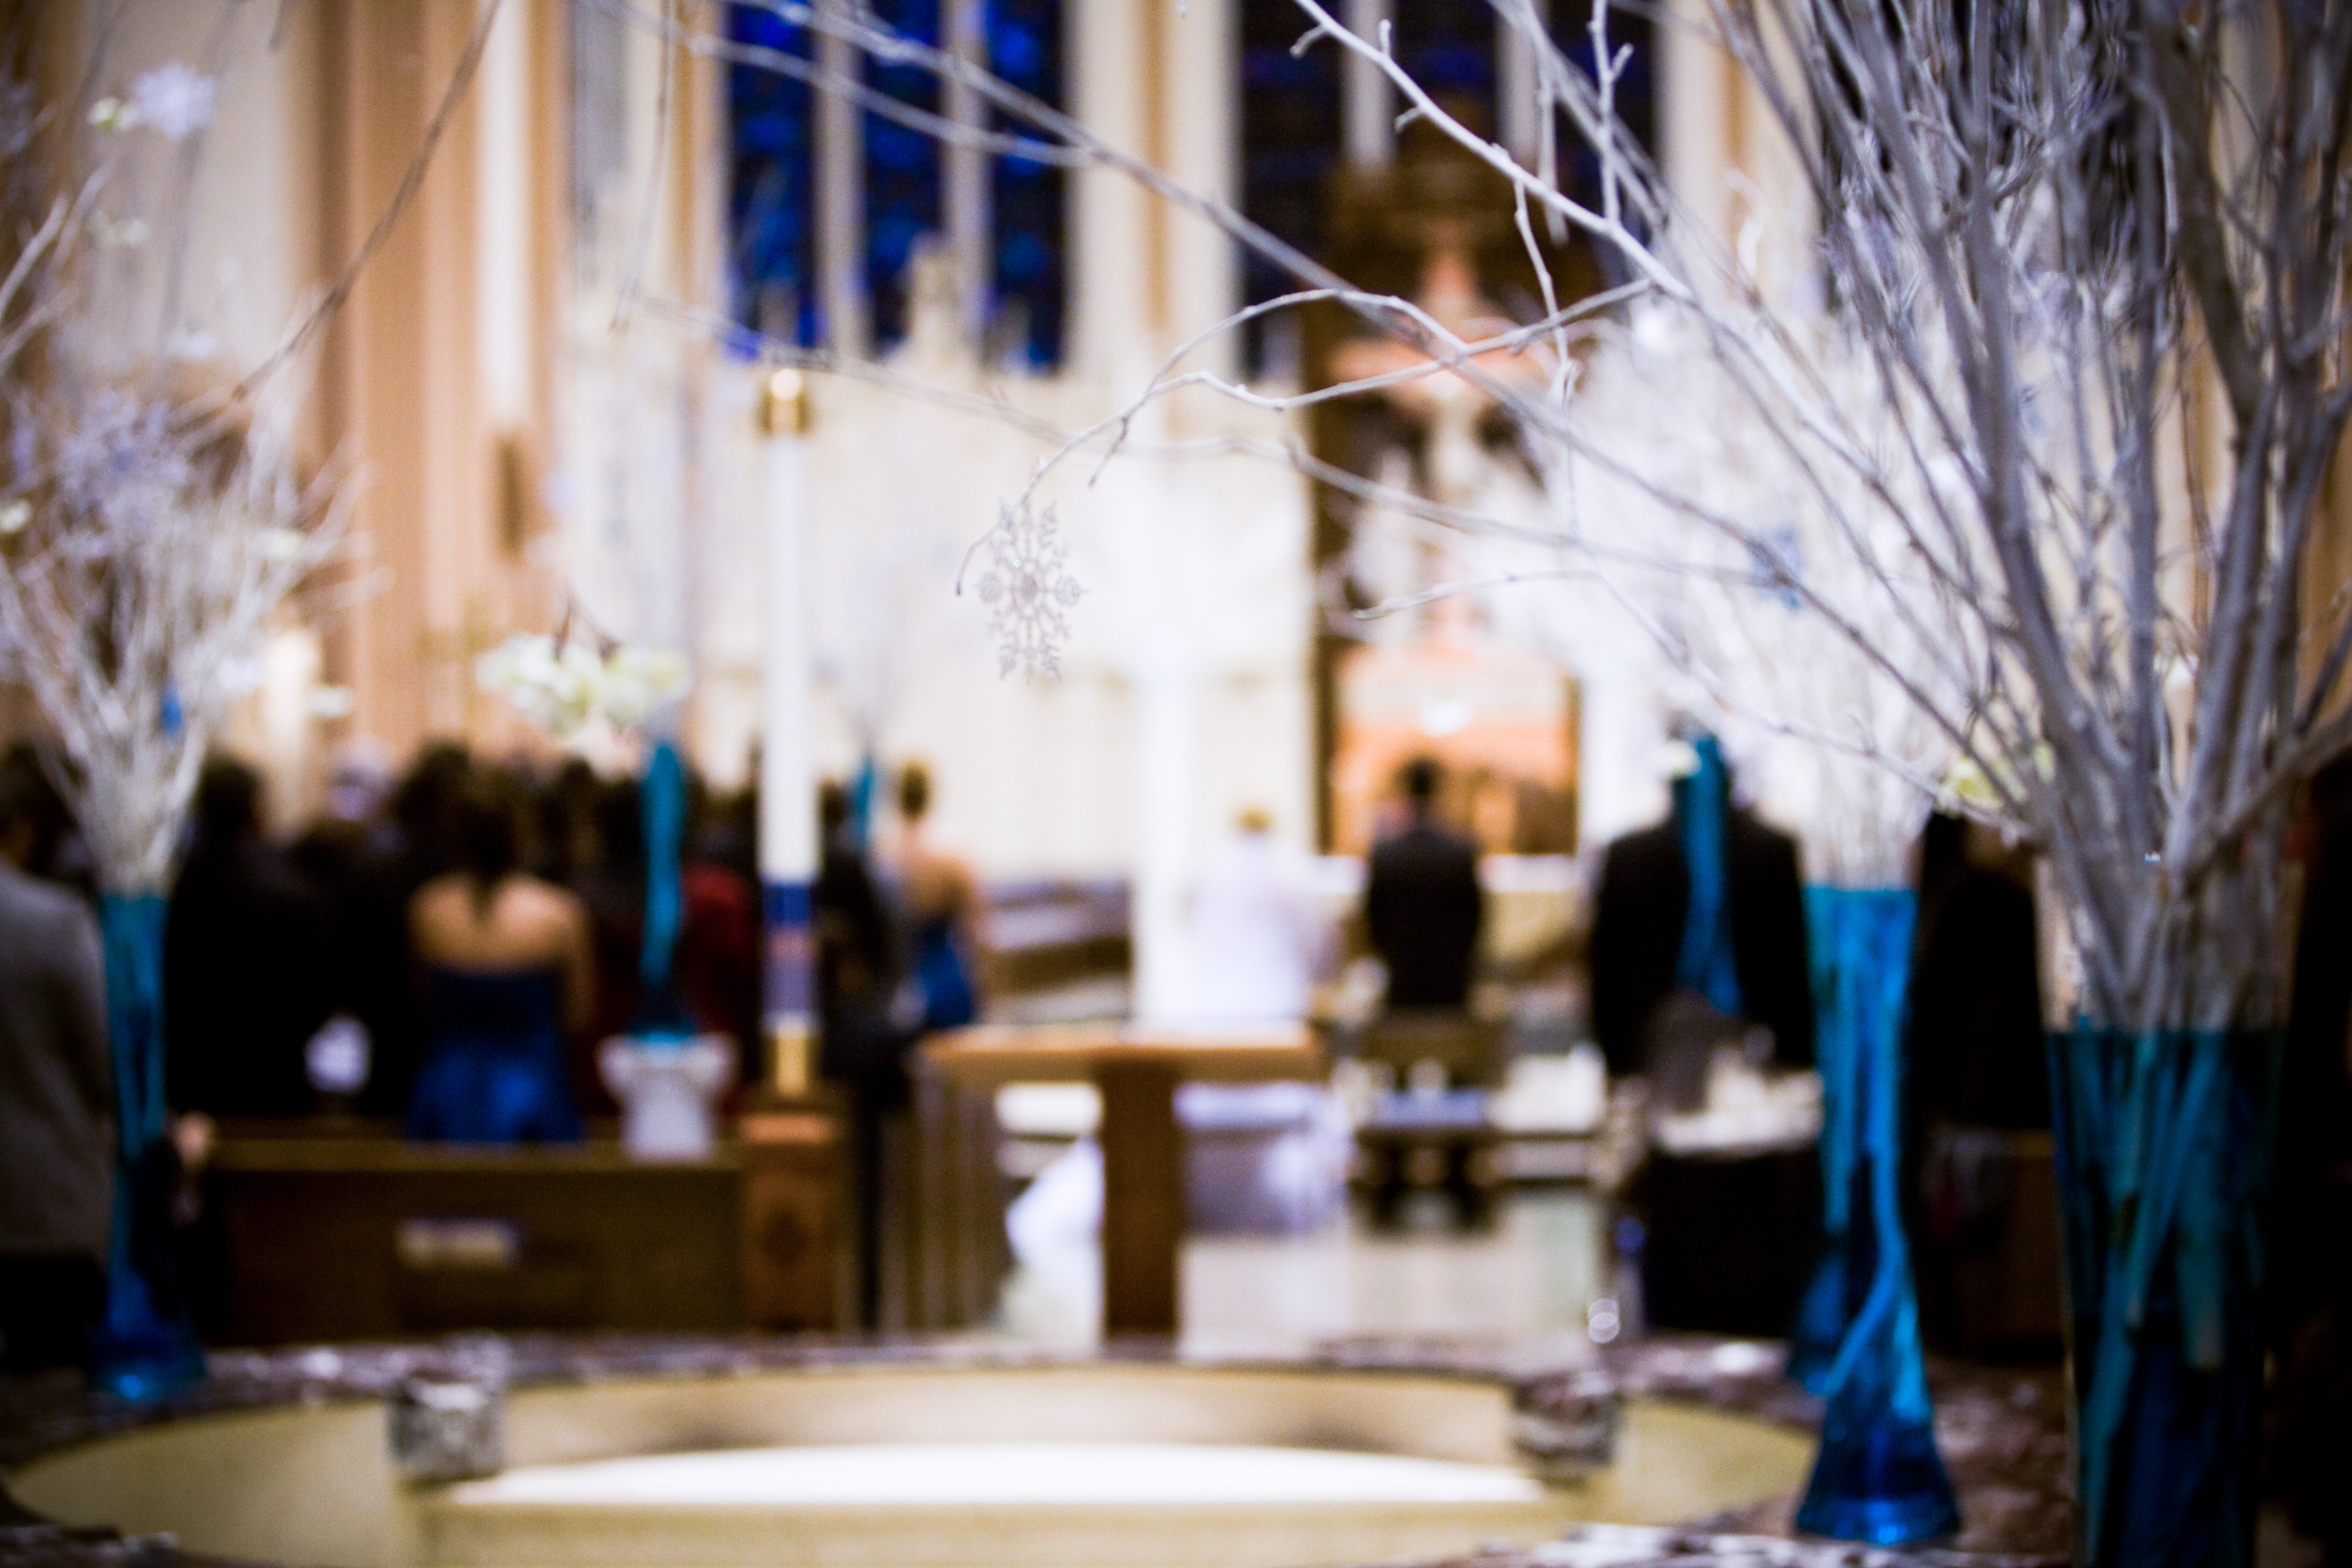 Ceremony, Flowers & Decor, blue, silver, Winter, Wedding, Branches, Teal, Ice, Aisle, llc, Turquoise, Wonderland, Virtuous events